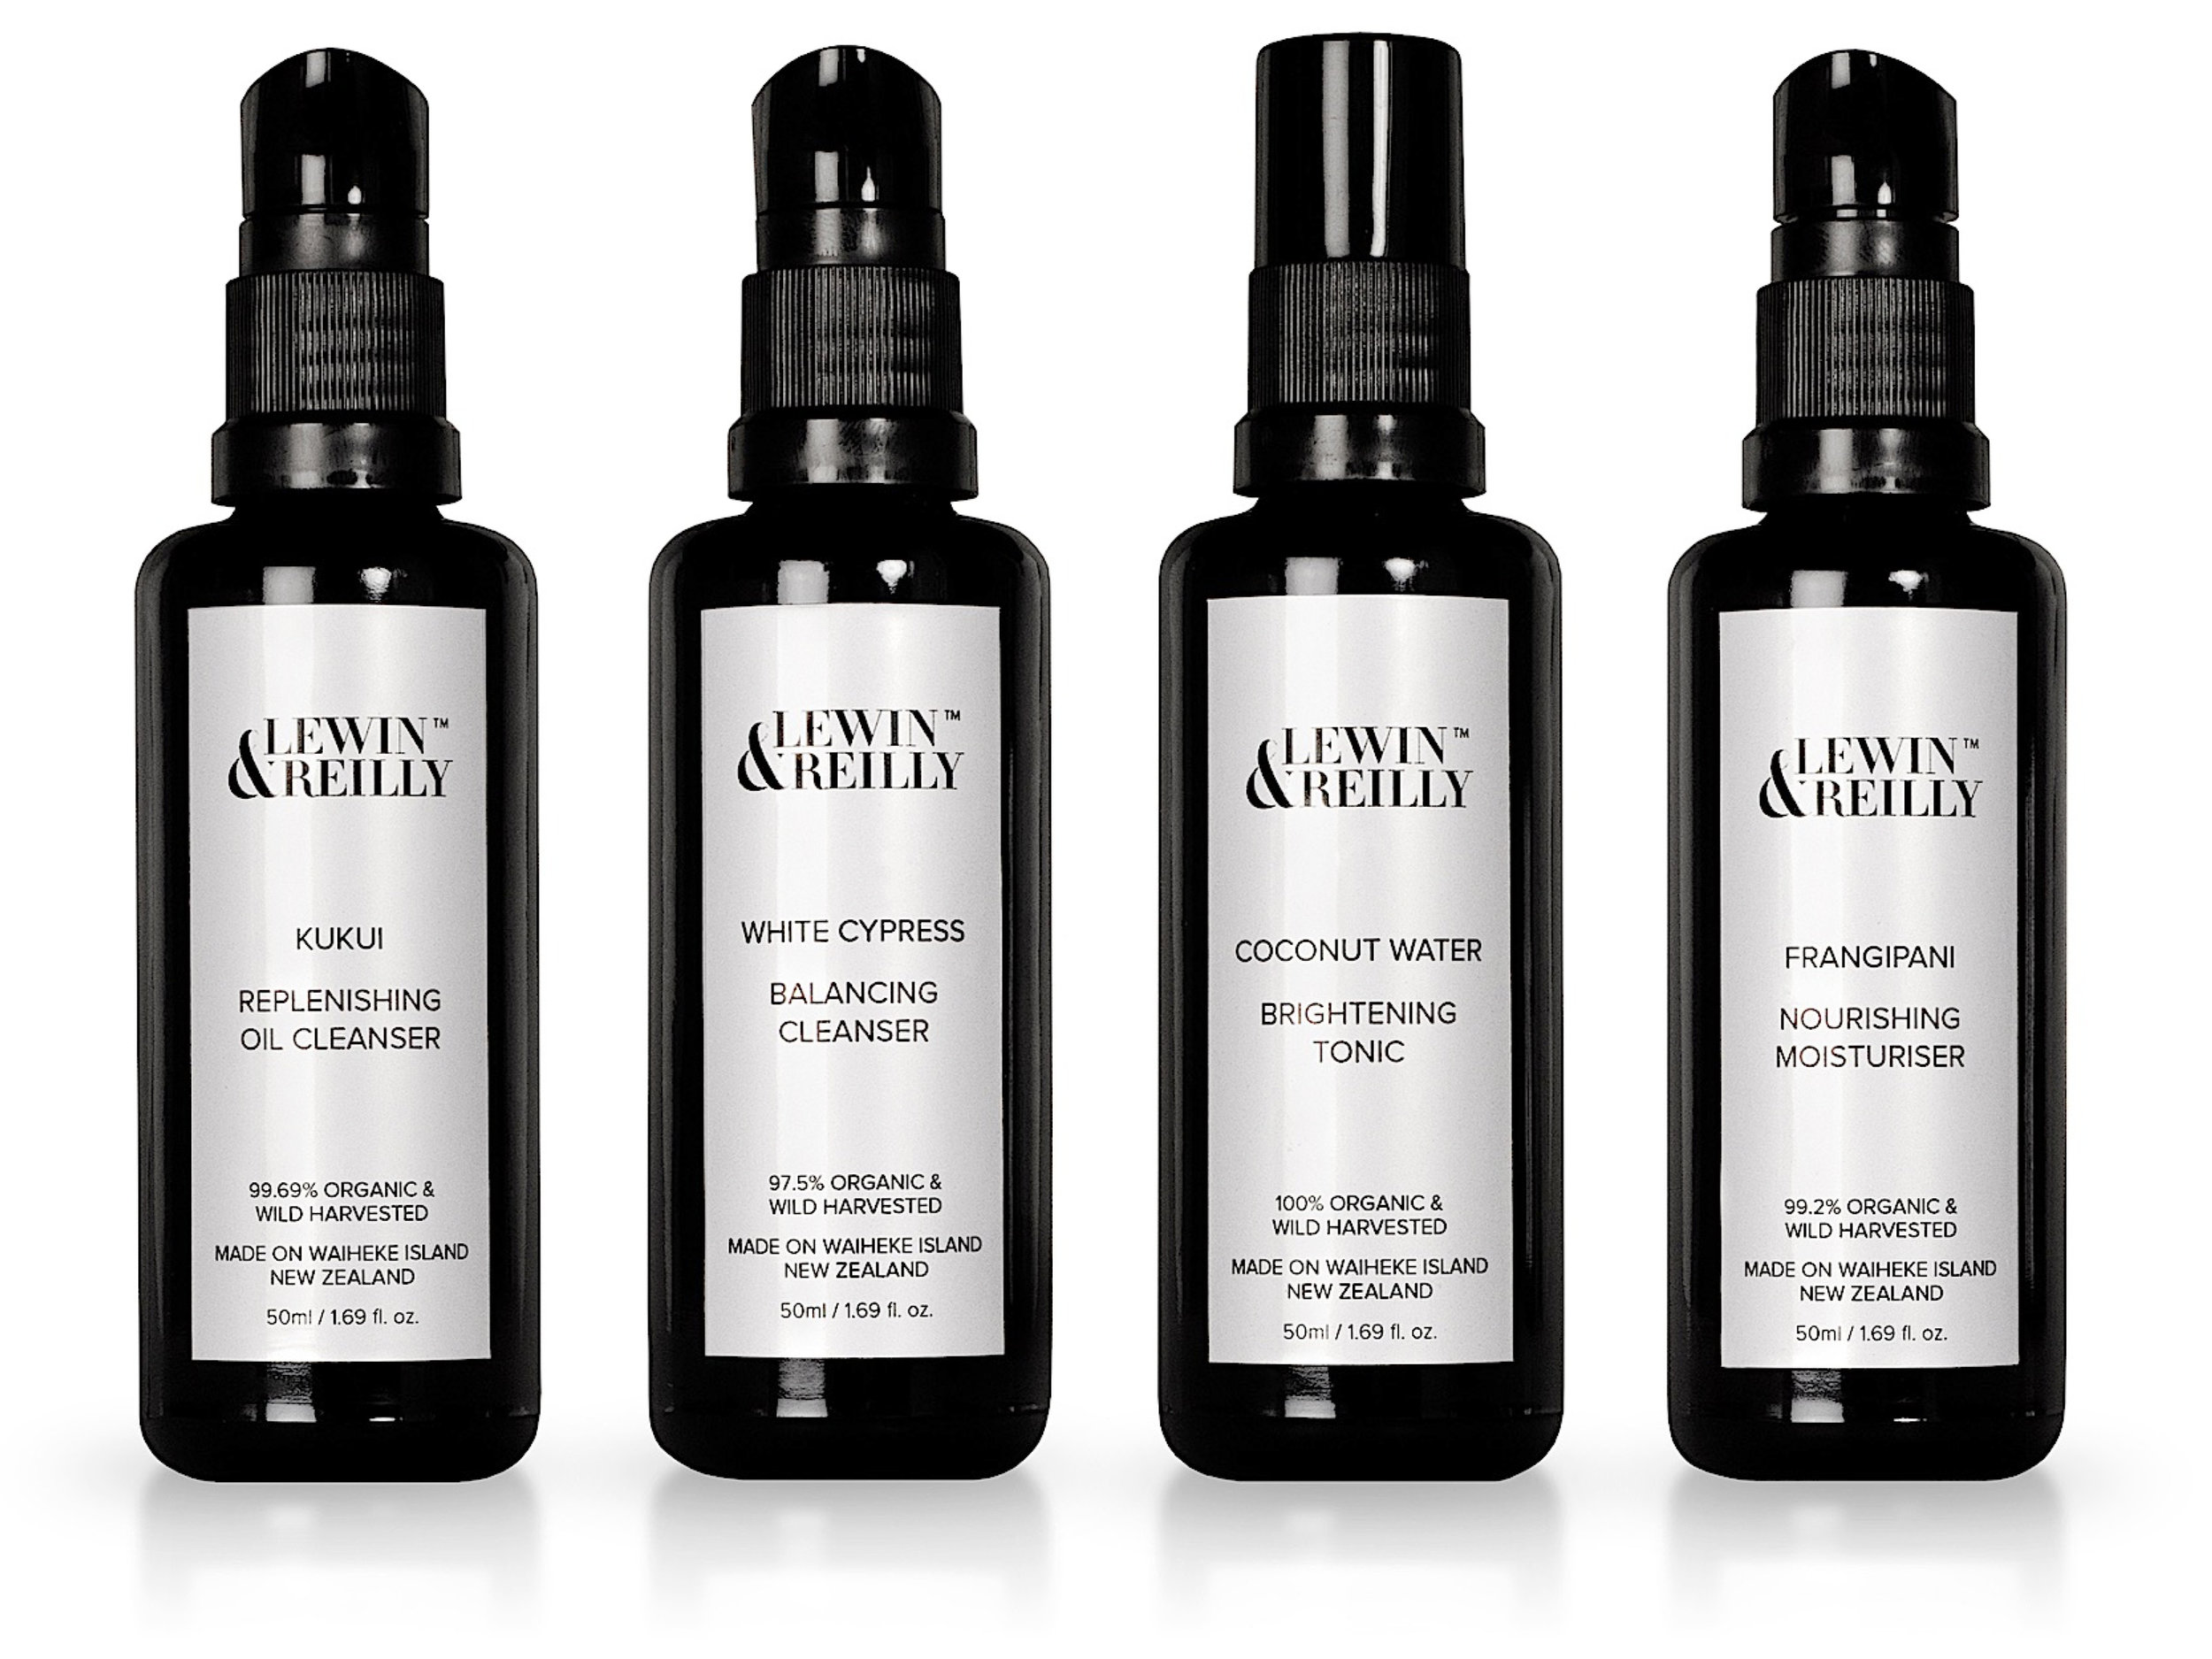 Lewin & Reilly Deep Cleanse Set  Image Source:https://www.lewinandreilly.com/